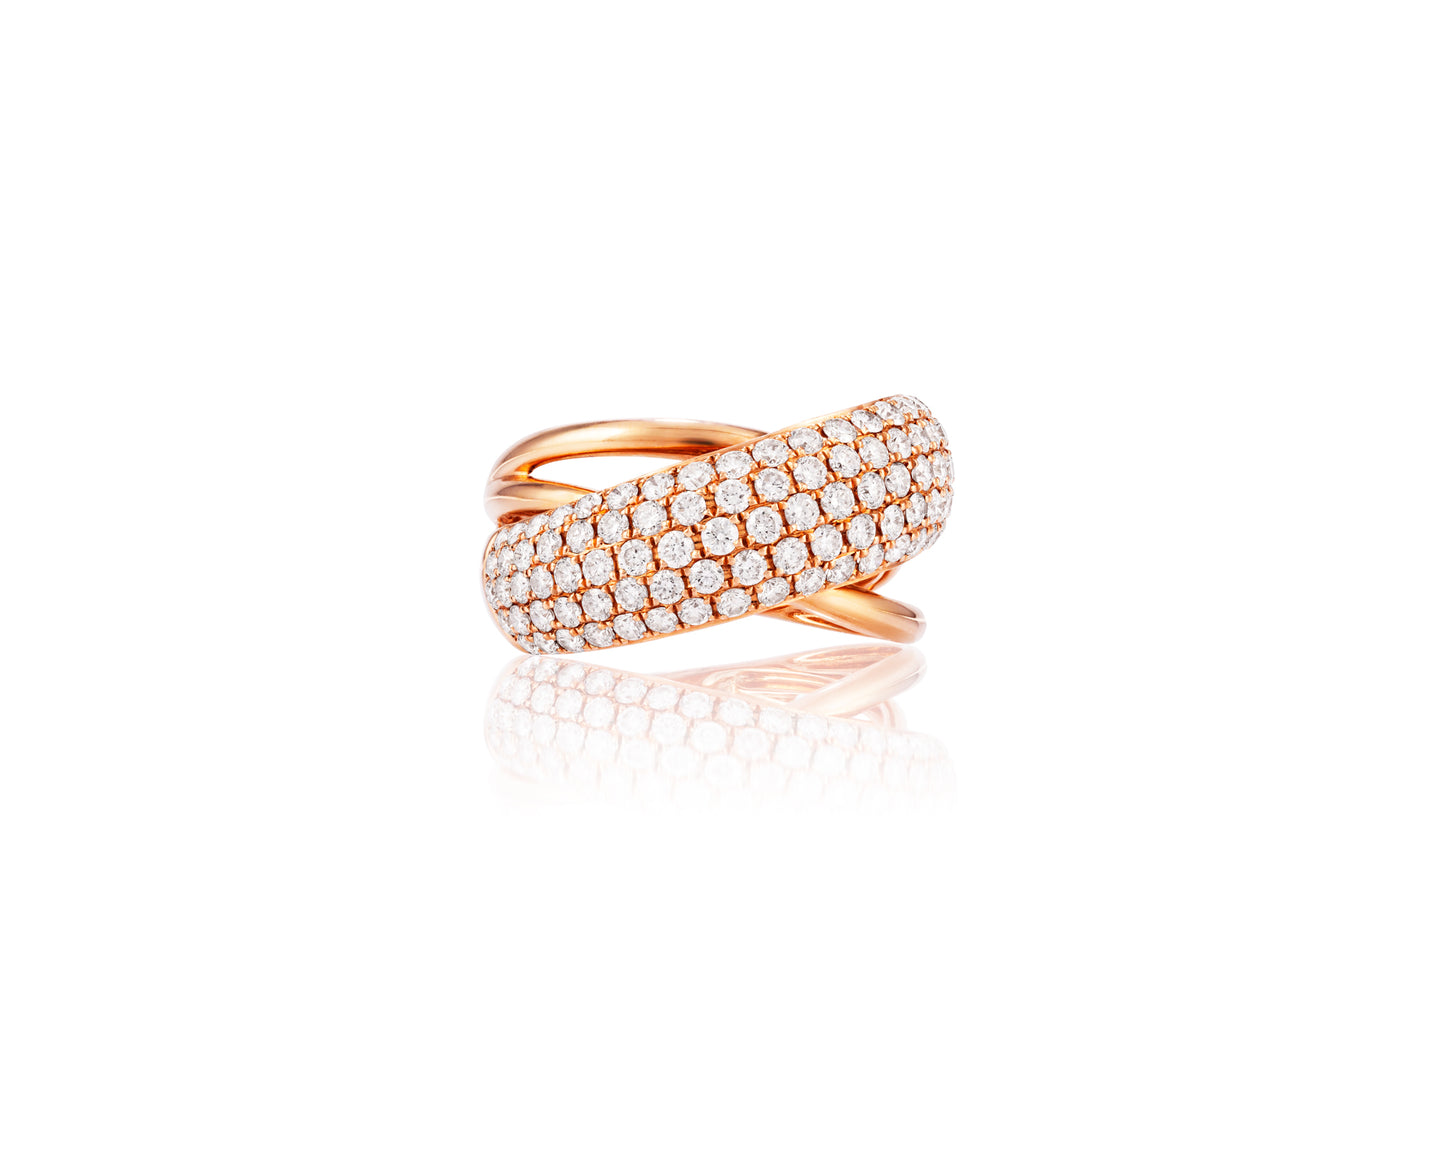 2ct Diamond 18kt Rose Gold Ring